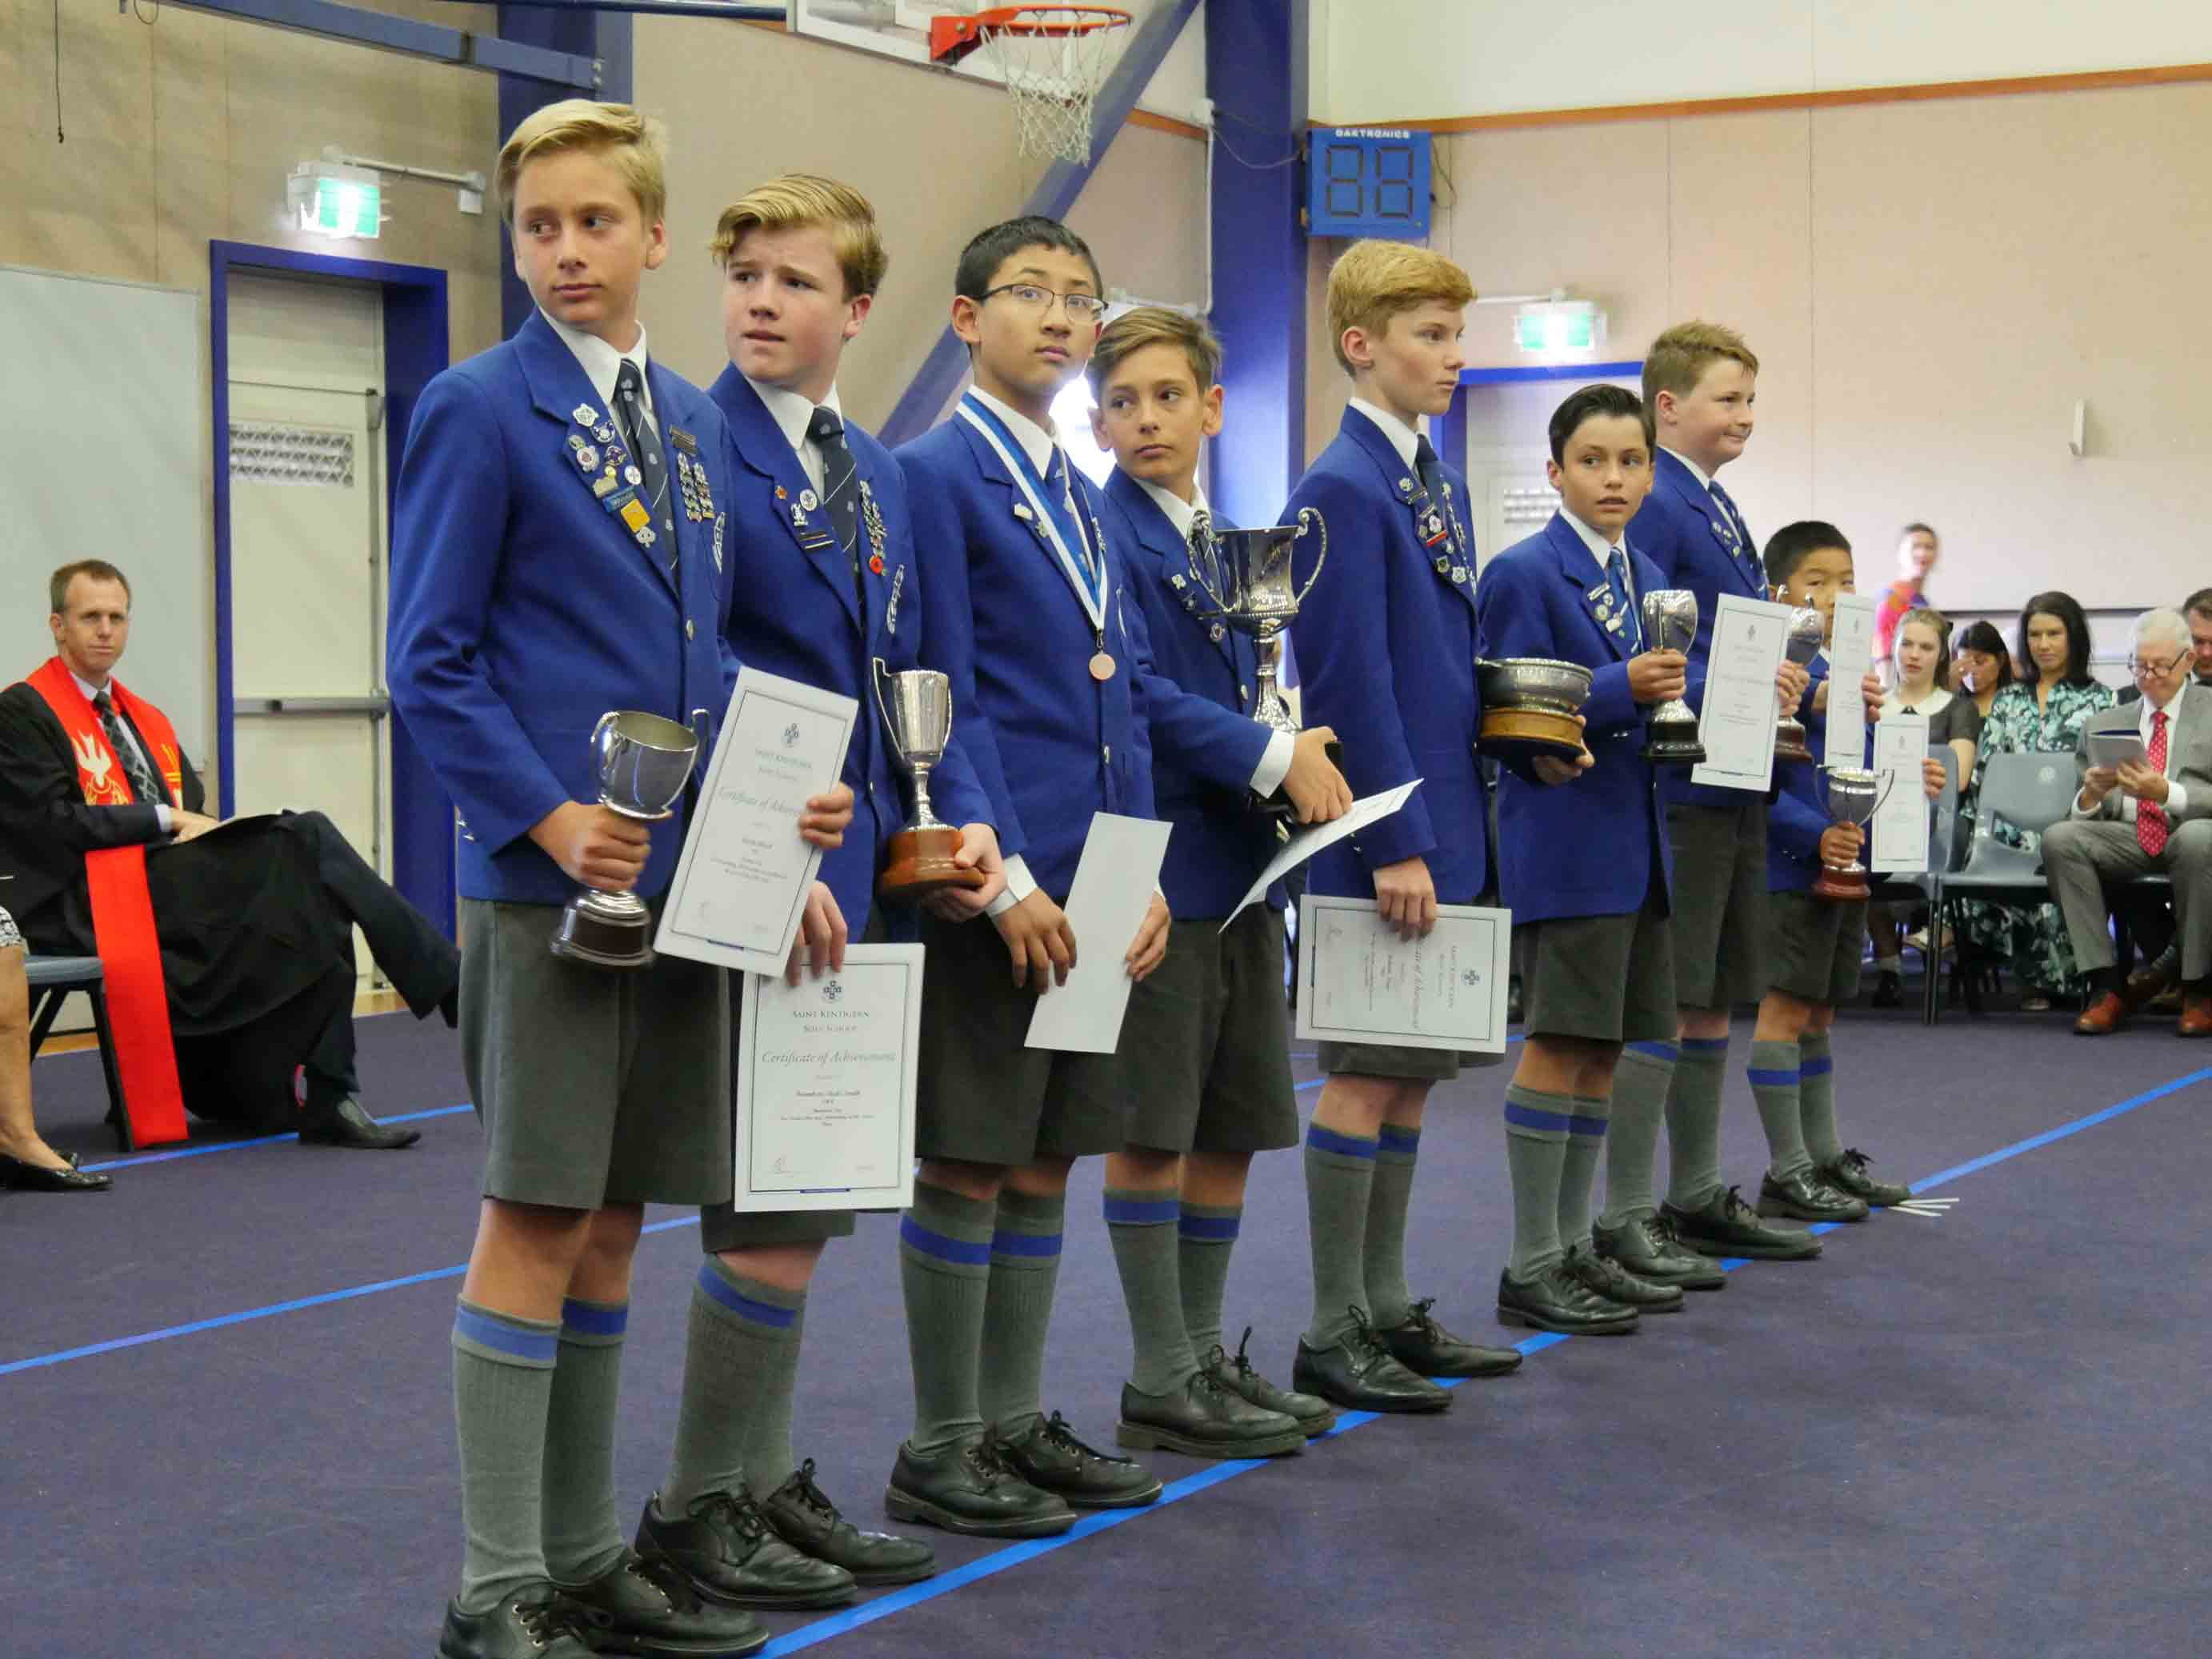 20 Saint-Kentigern-Boys'-School-Prizegiving-2018.jpg